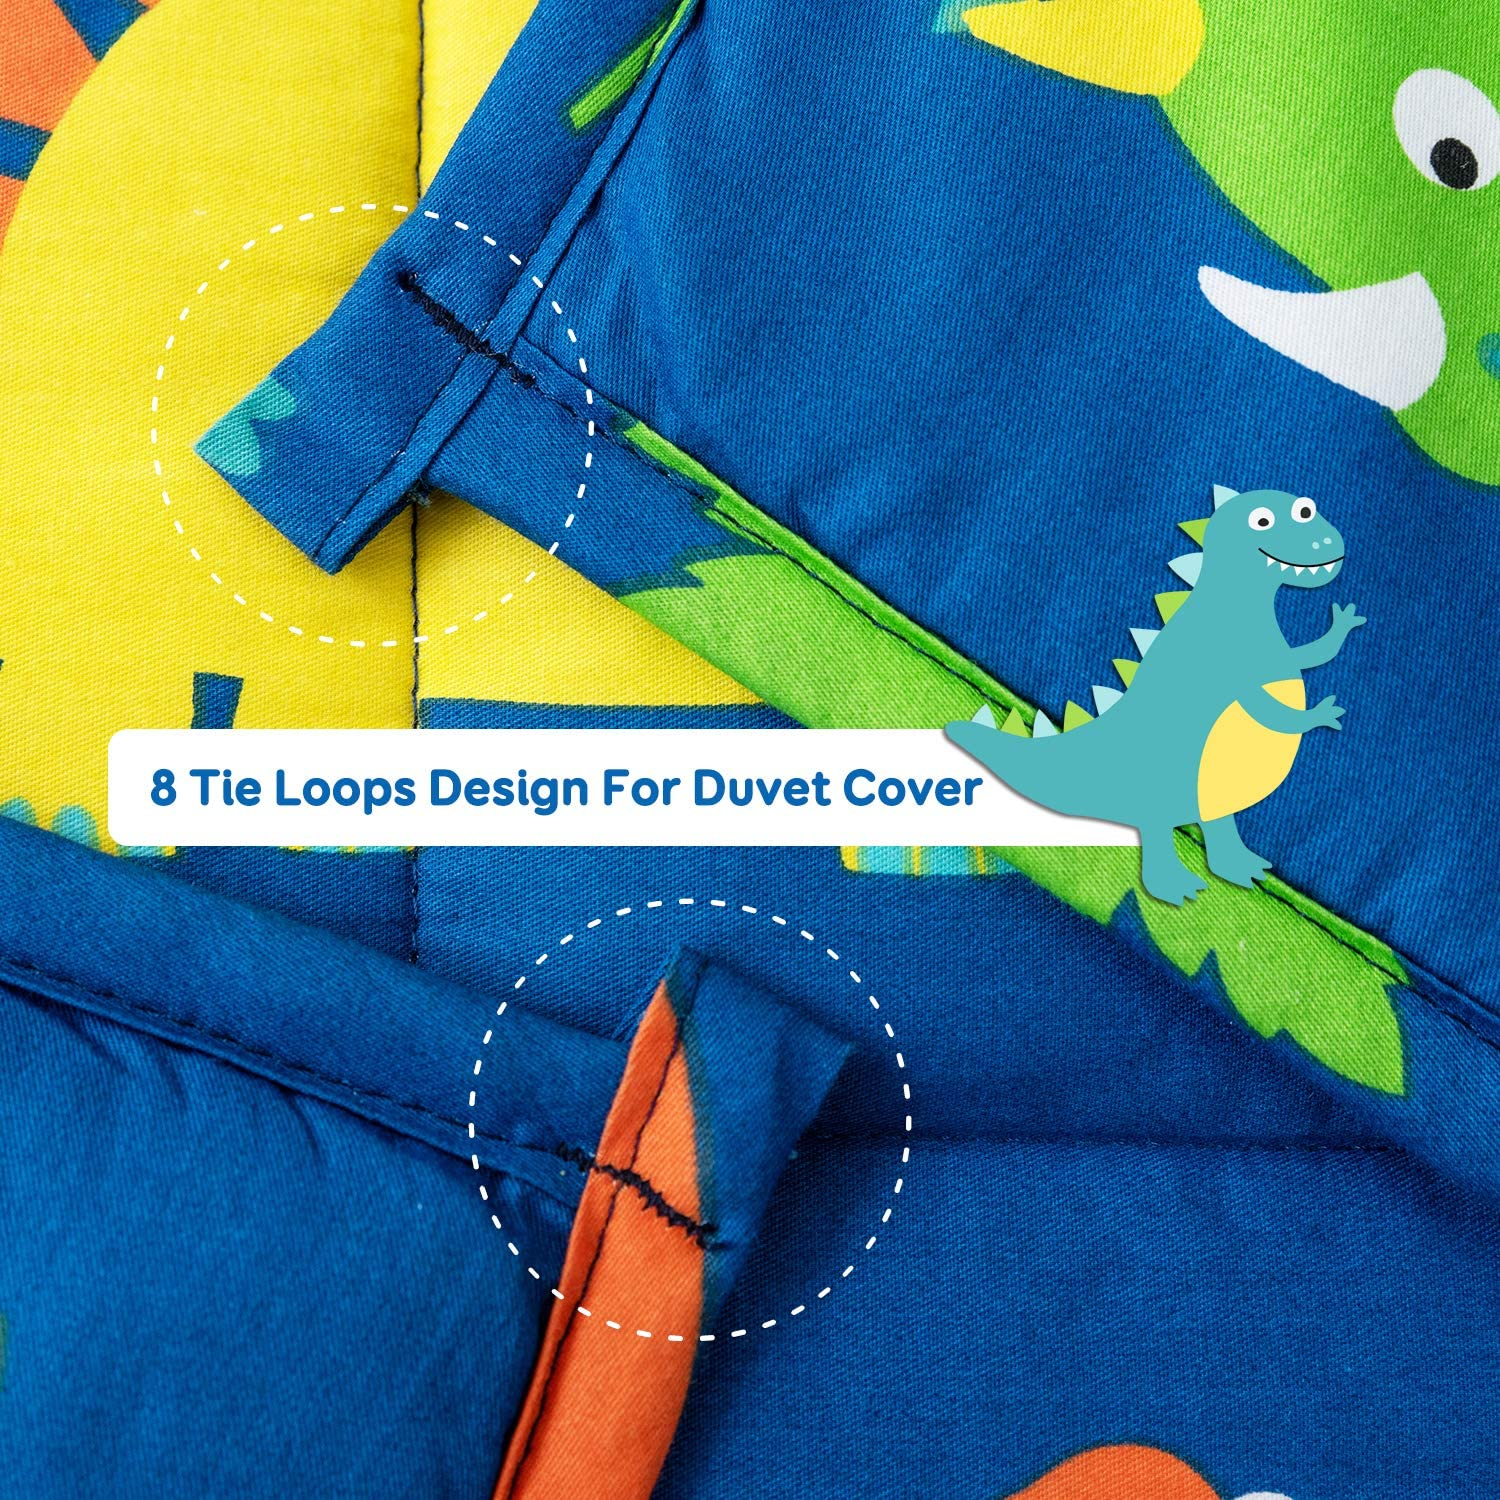 Topblan Kids Weighted Blanket 7 lbs 41x60 for Kids and Teens Blue Dinosaur 100/% Natural Cotton with Premium Glass Beads Calming Kids Mind and Sleep Well